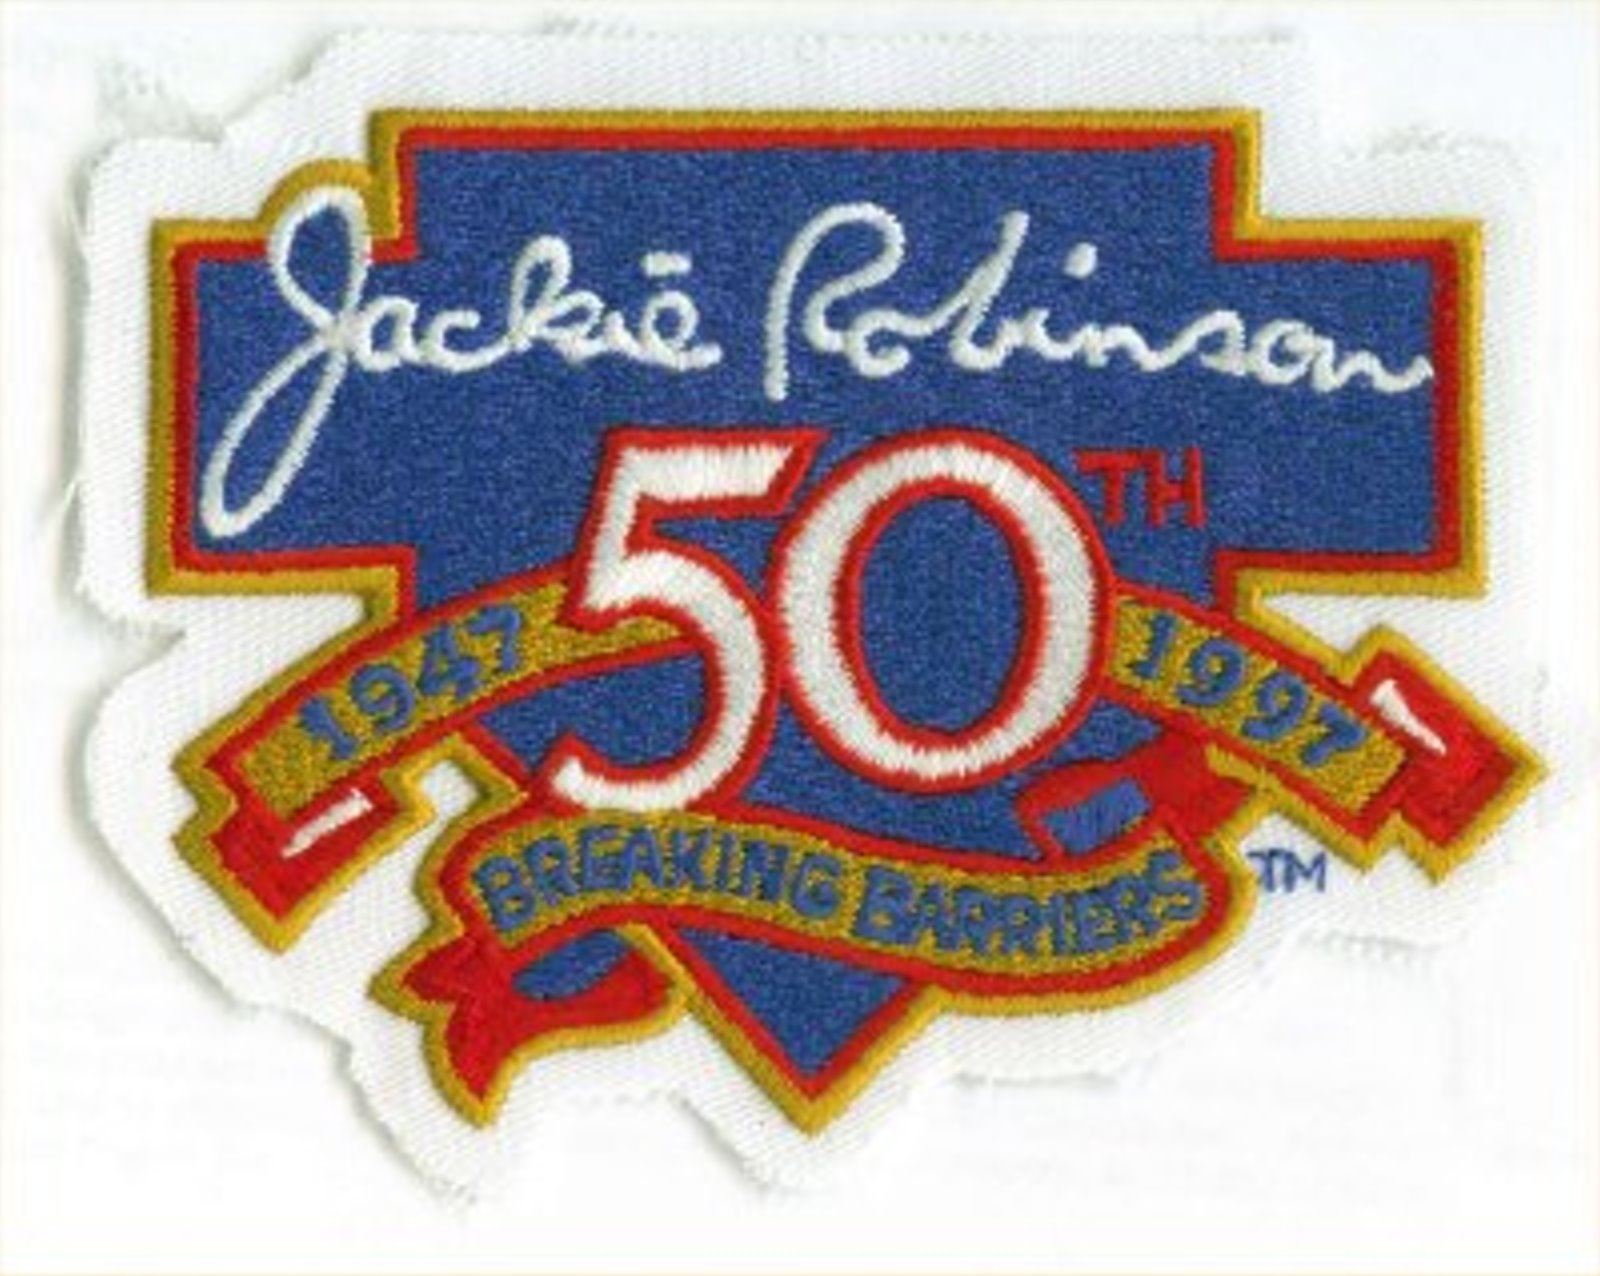 Jackie Robinson 50th Breaking Barriers patch 1947-1997